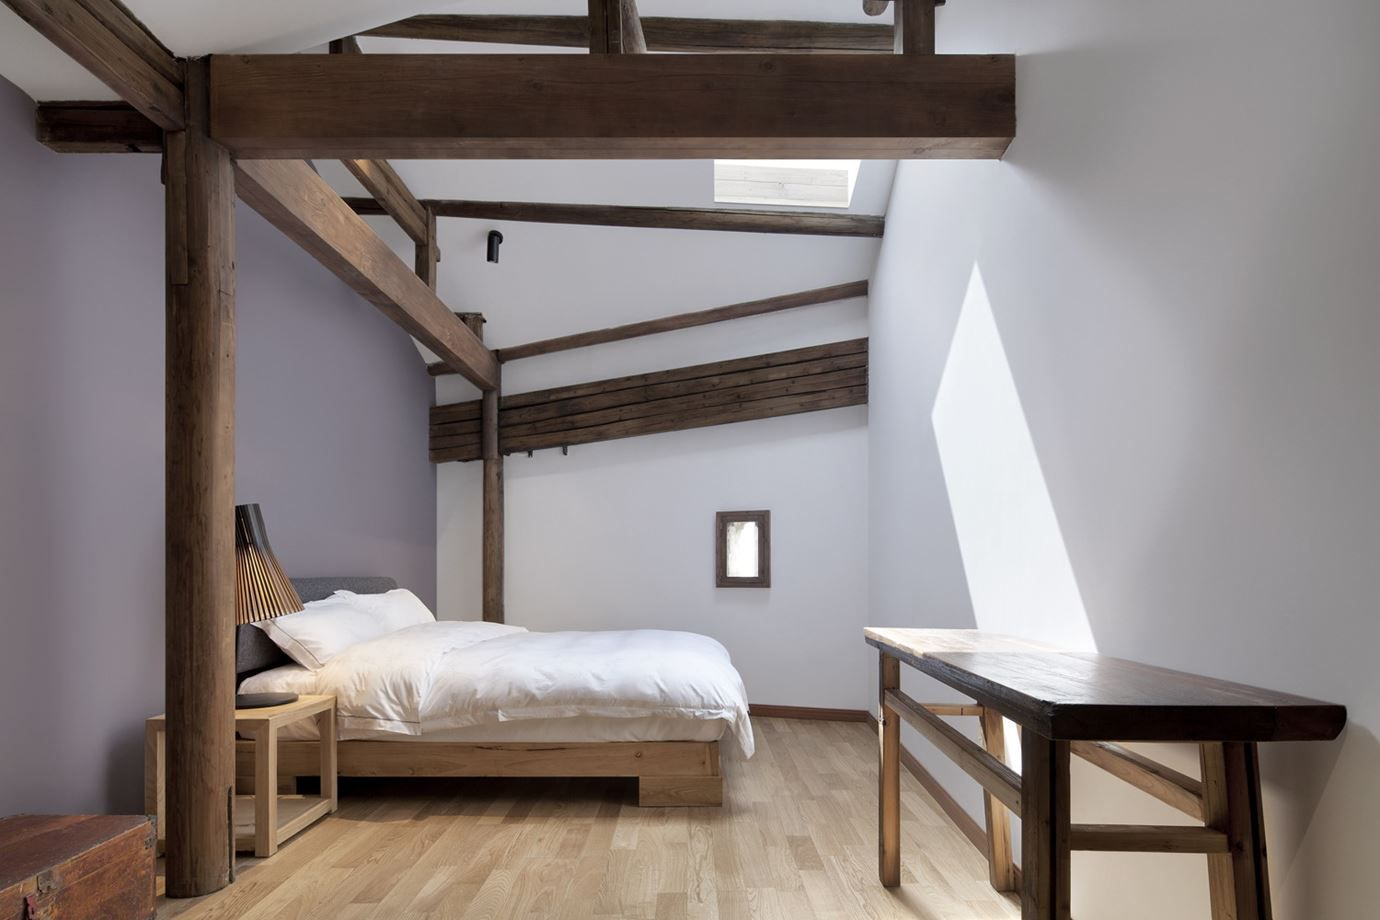 1560234223 792 try a minimalist bedroom design for less stress and a good nights sleep - Try a Minimalist Bedroom Design for Less Stress and a Good Night's Sleep